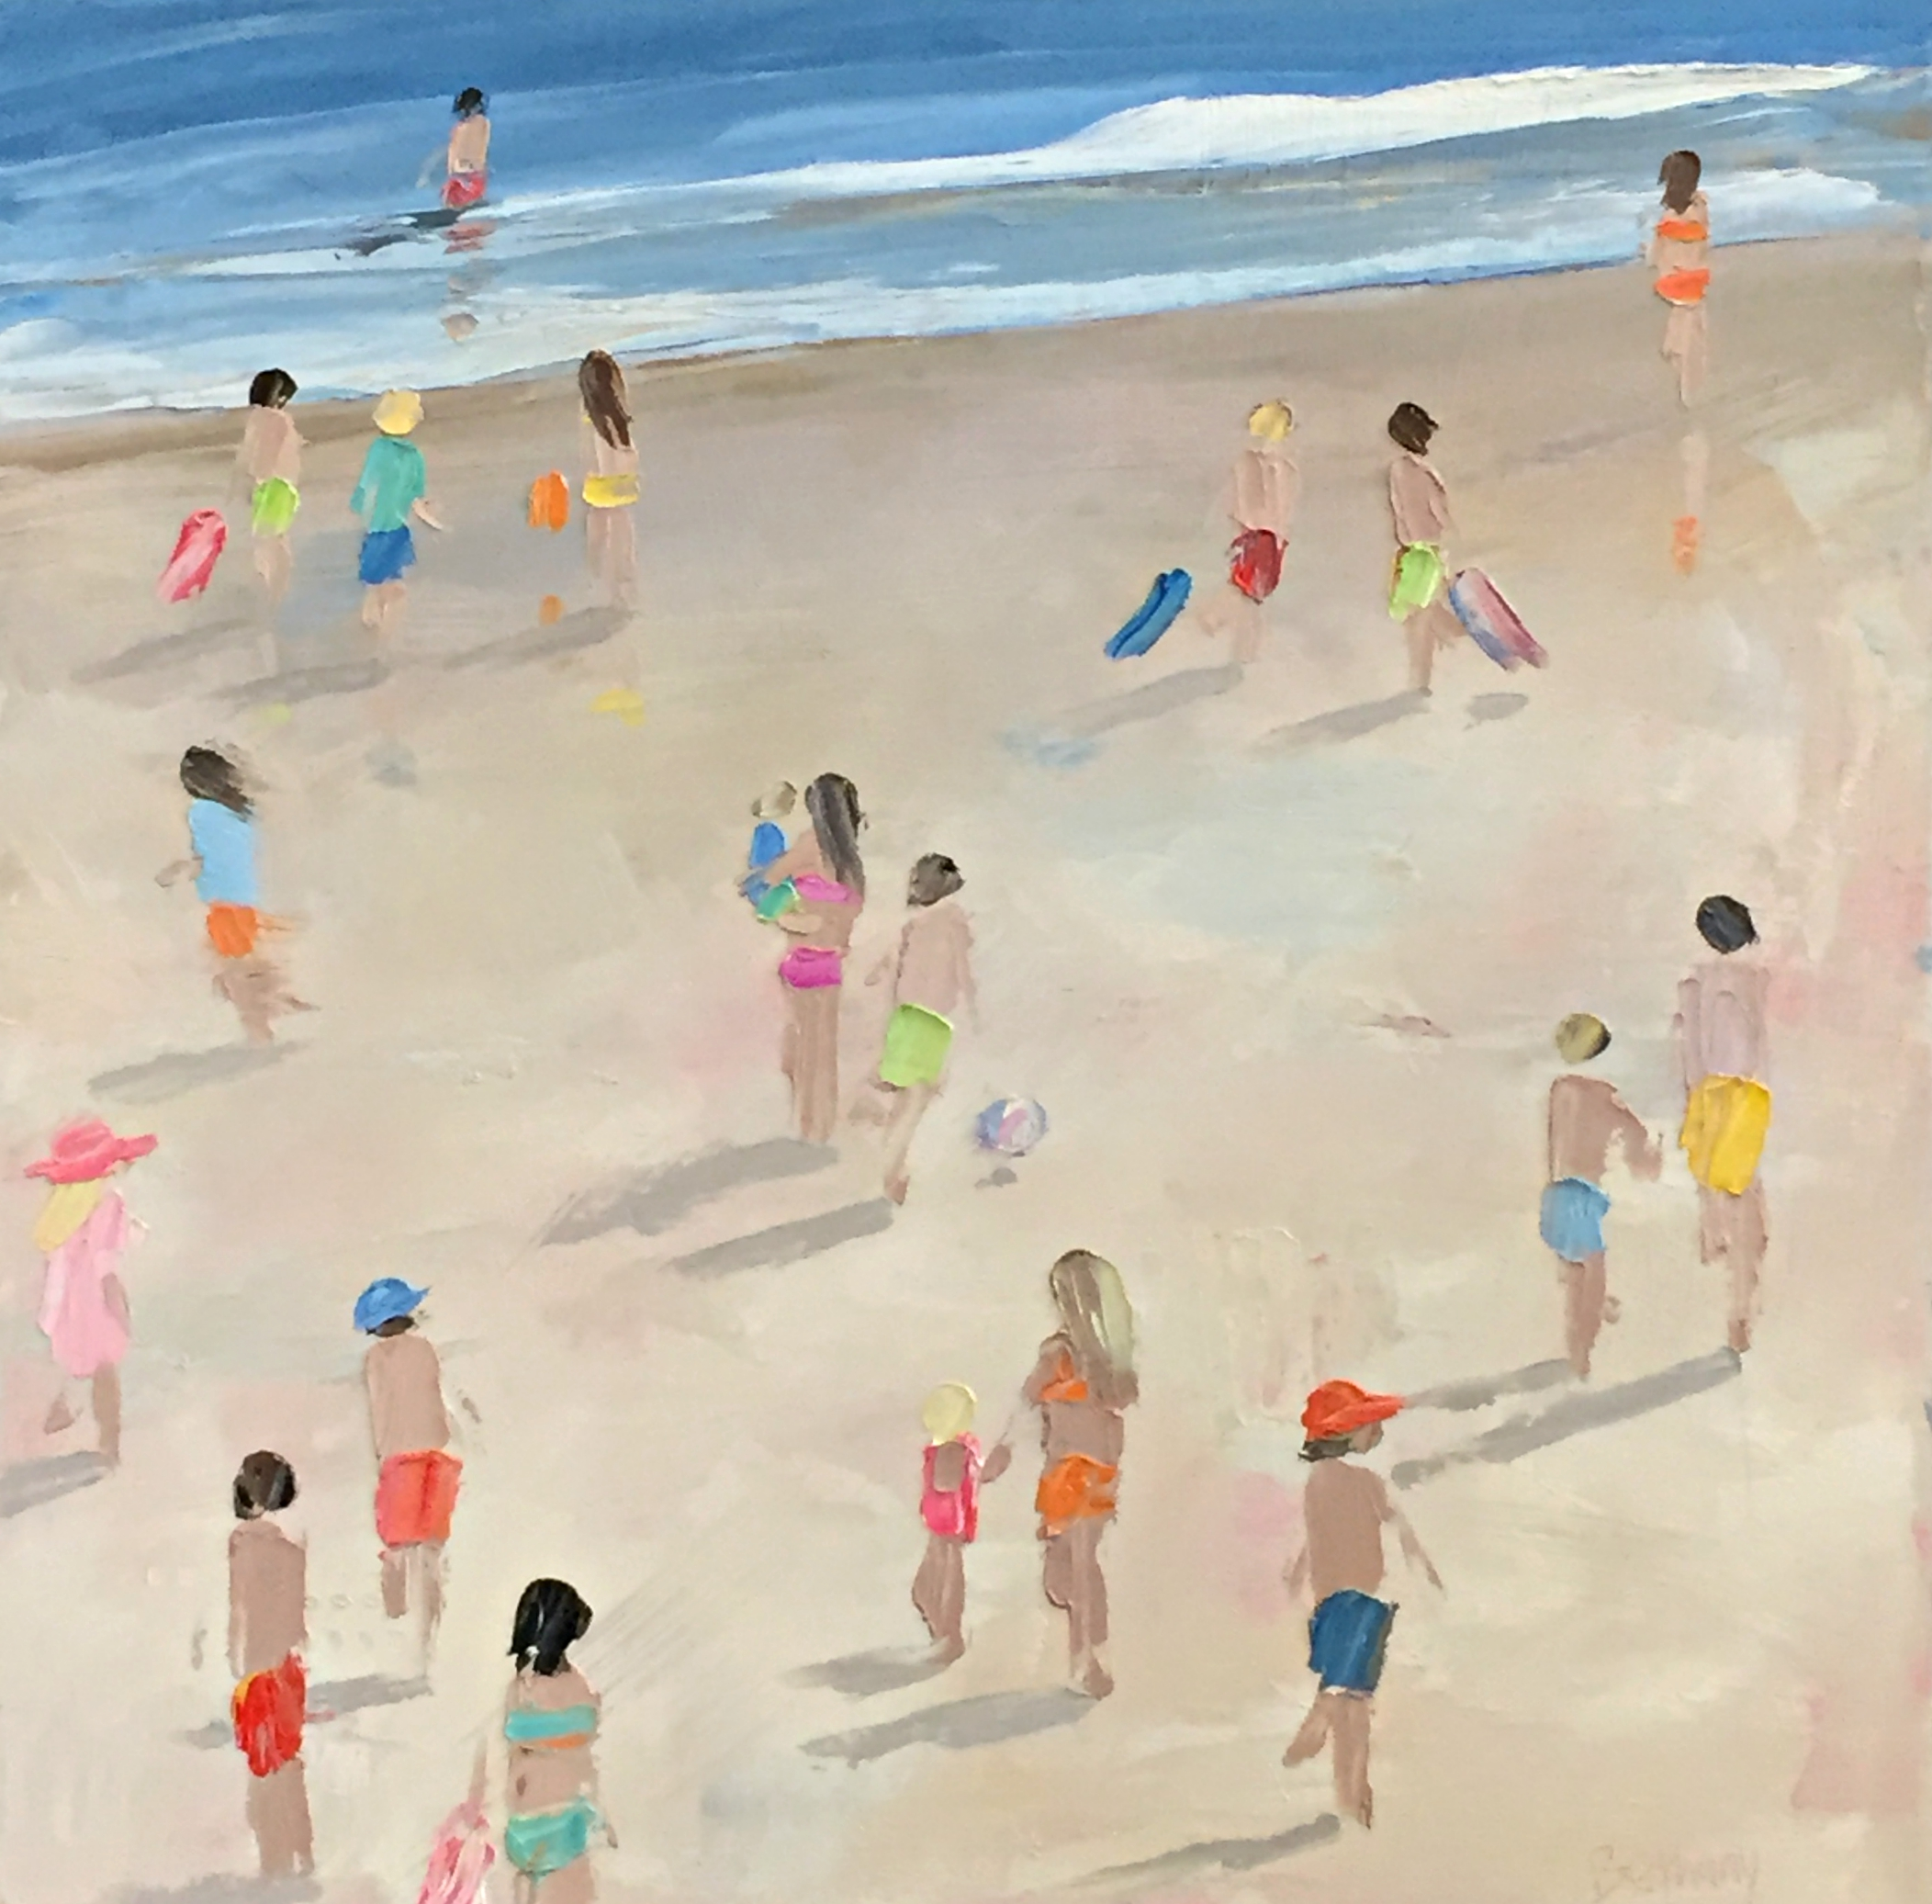 Barefoot and Free, beach painting by Bethany Harper Williams | Effusion Art Gallery + Cast Glass Studio, Invermere BC